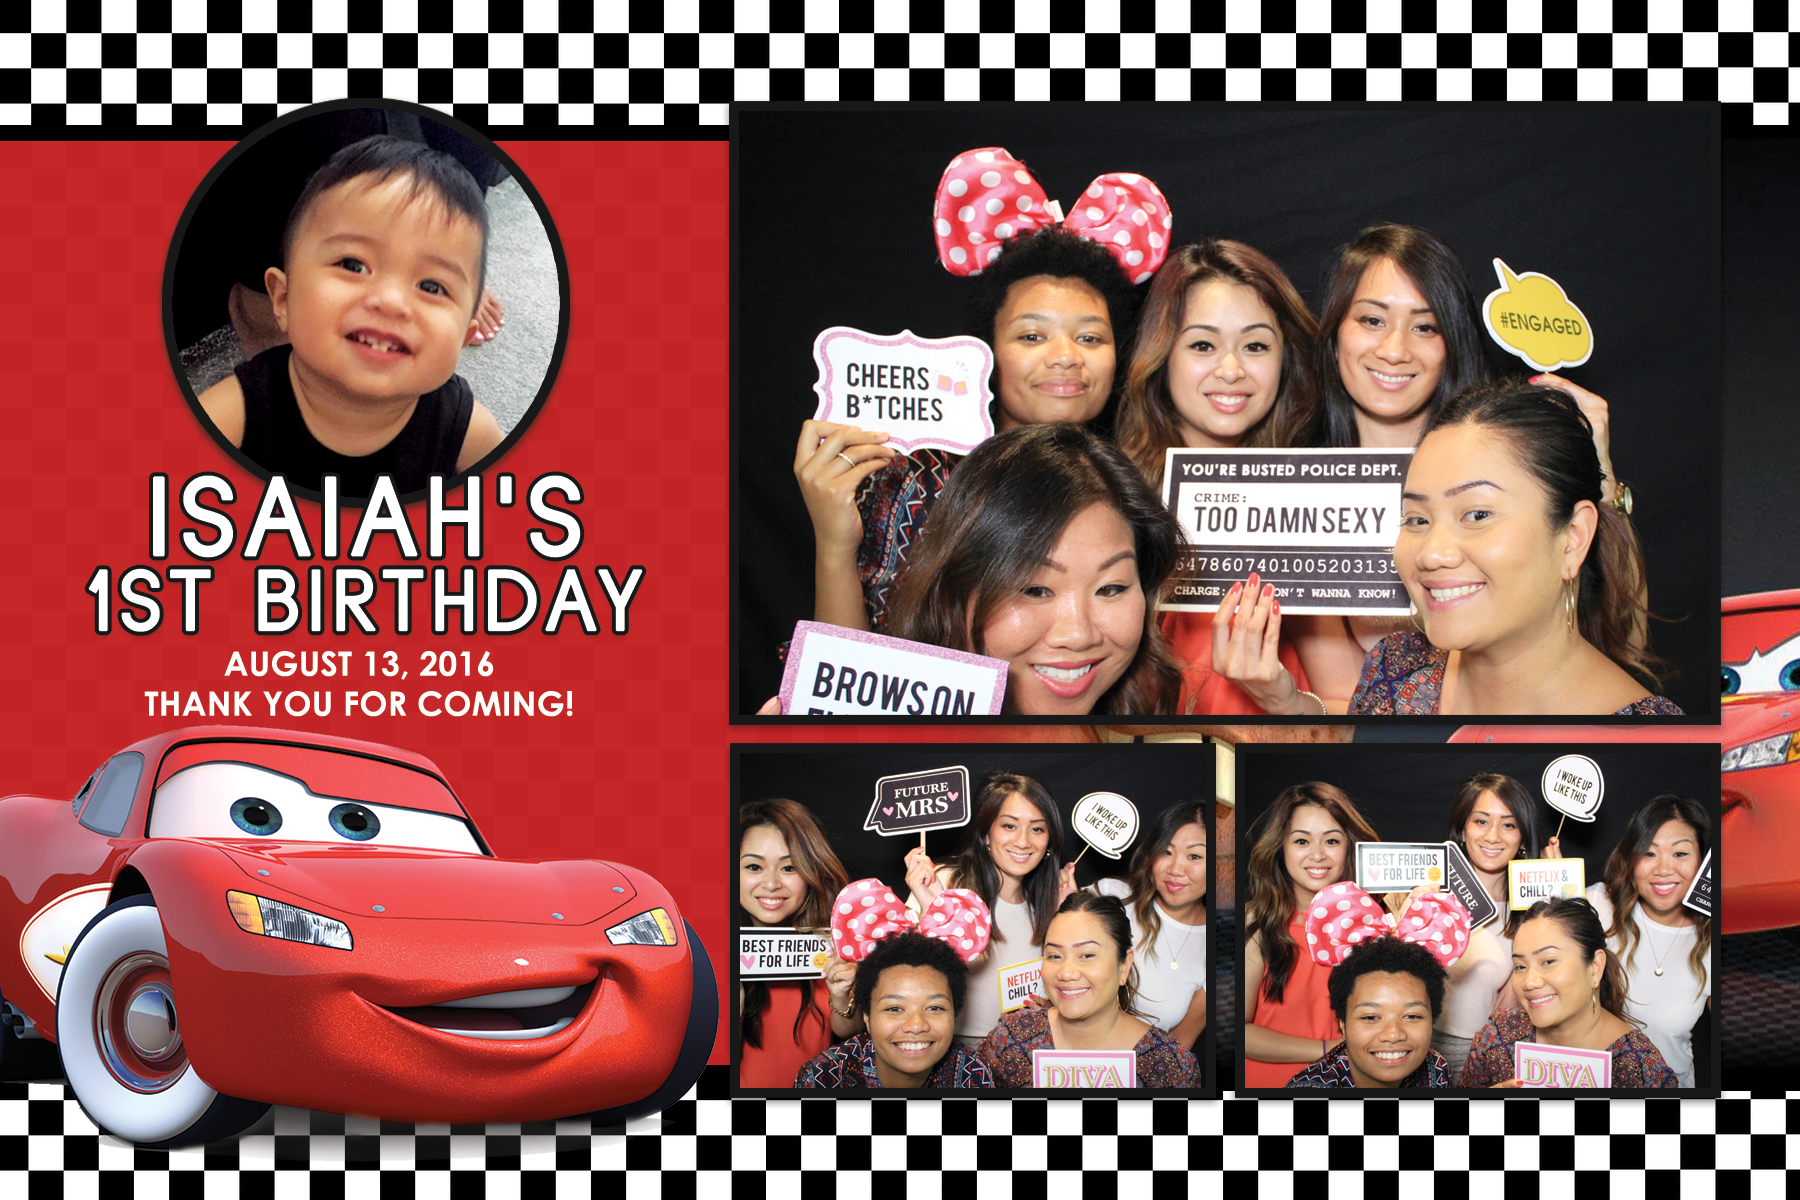 2 Cars Photo Booth